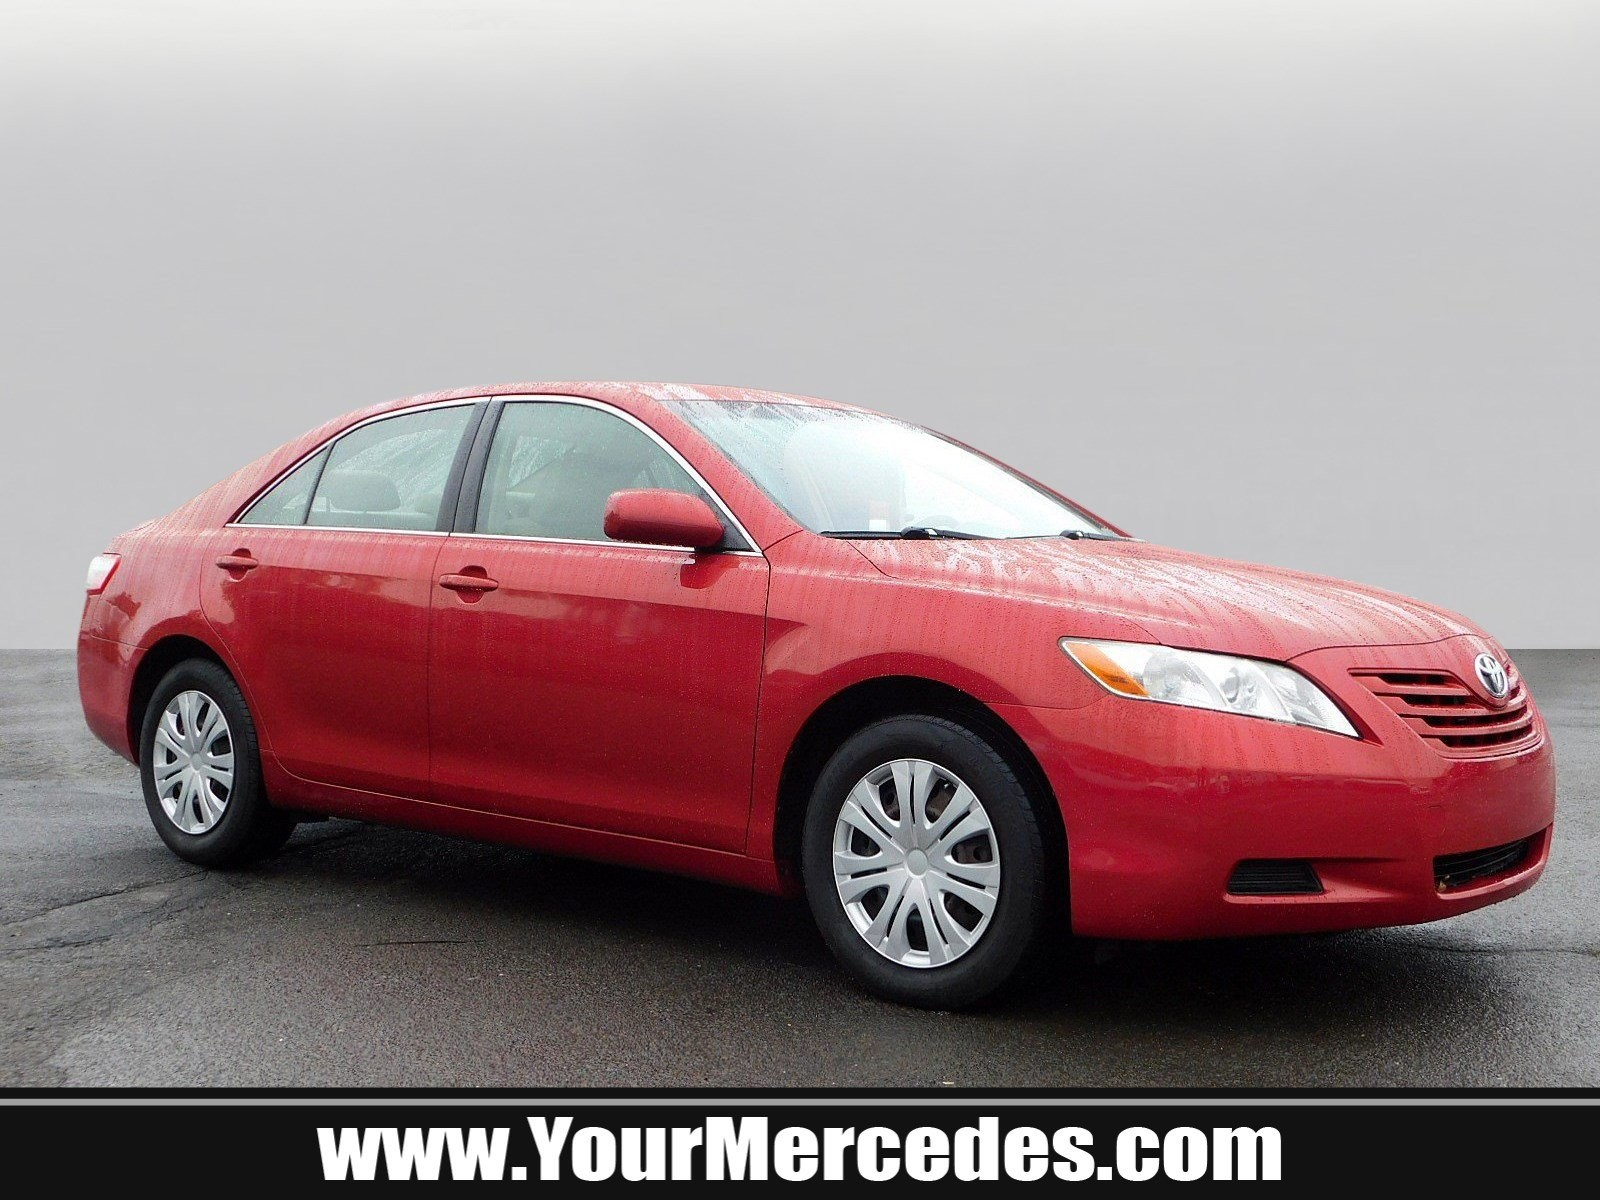 2007 Camry Parts Diagram Pre Owned 2007 toyota Camry Le 4d Sedan In West Chester R T Of 2007 Camry Parts Diagram